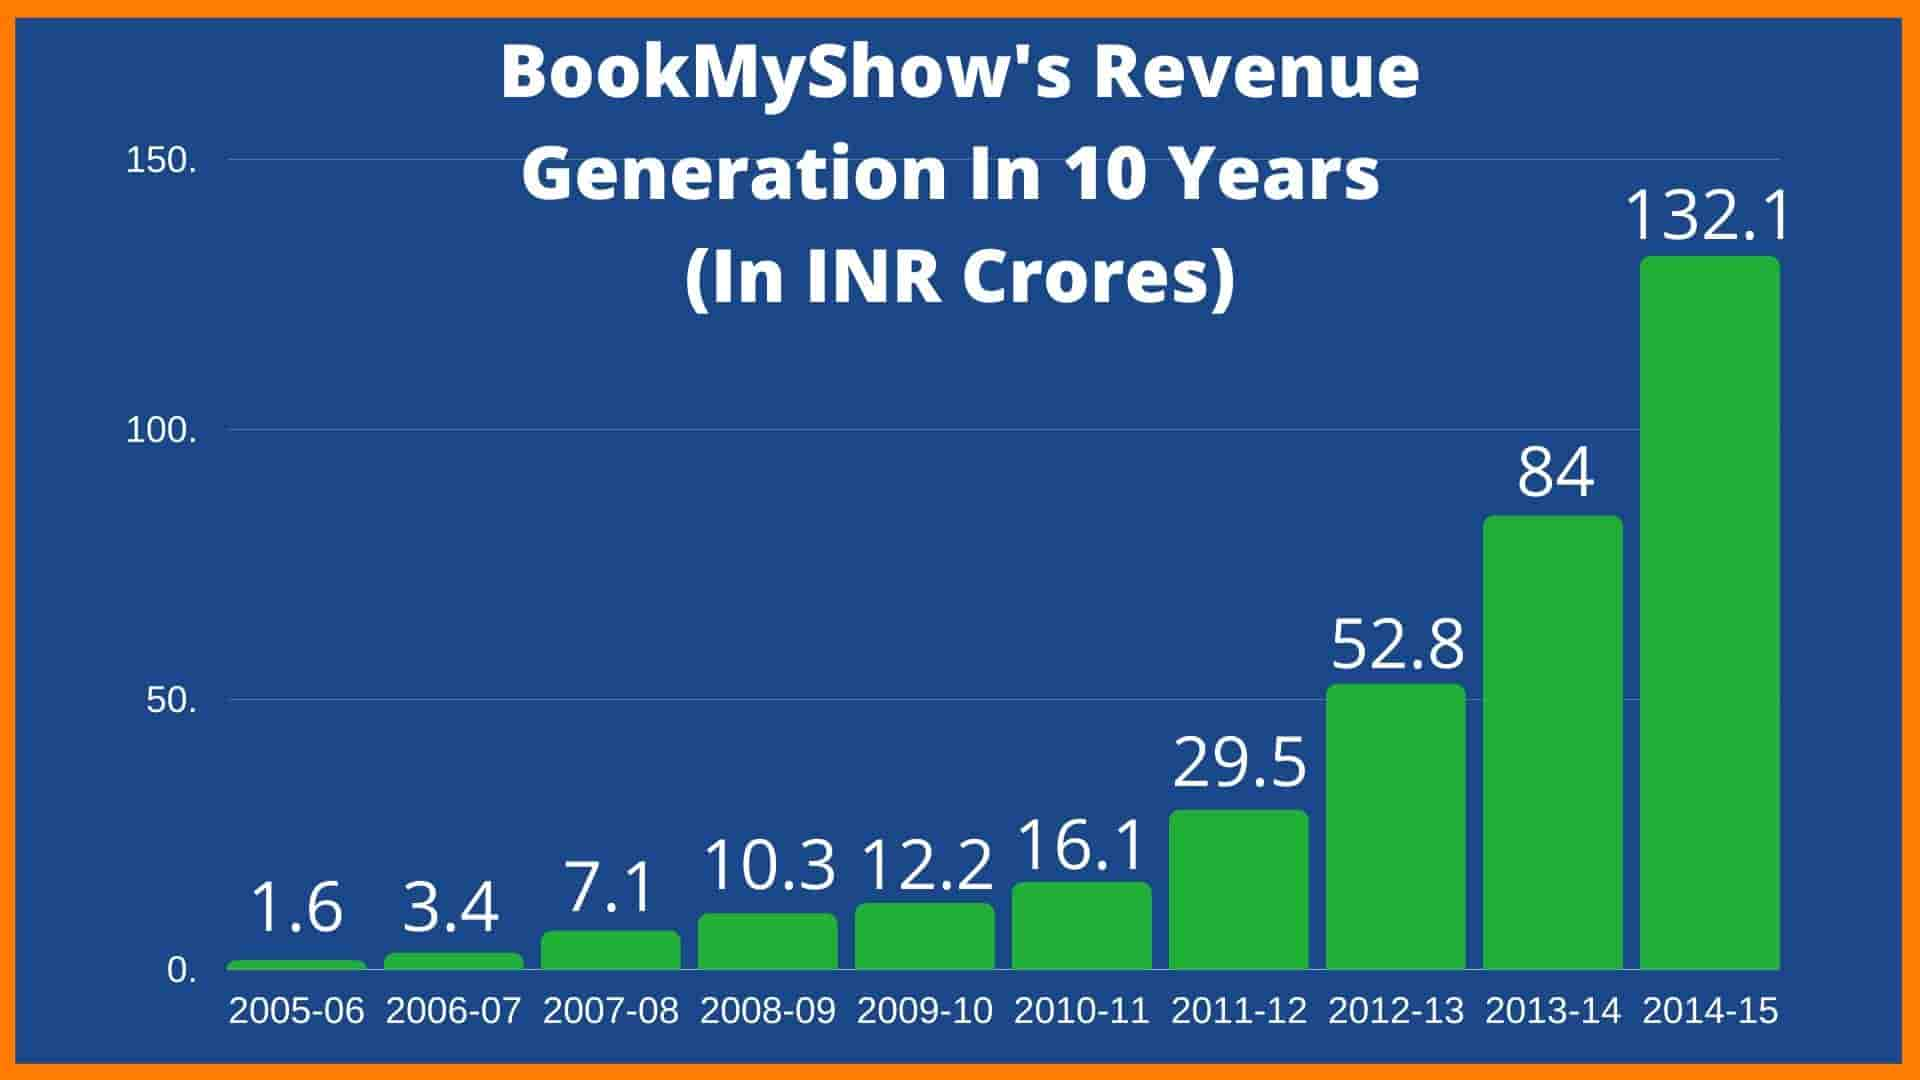 BookMyShow Revenue Generation